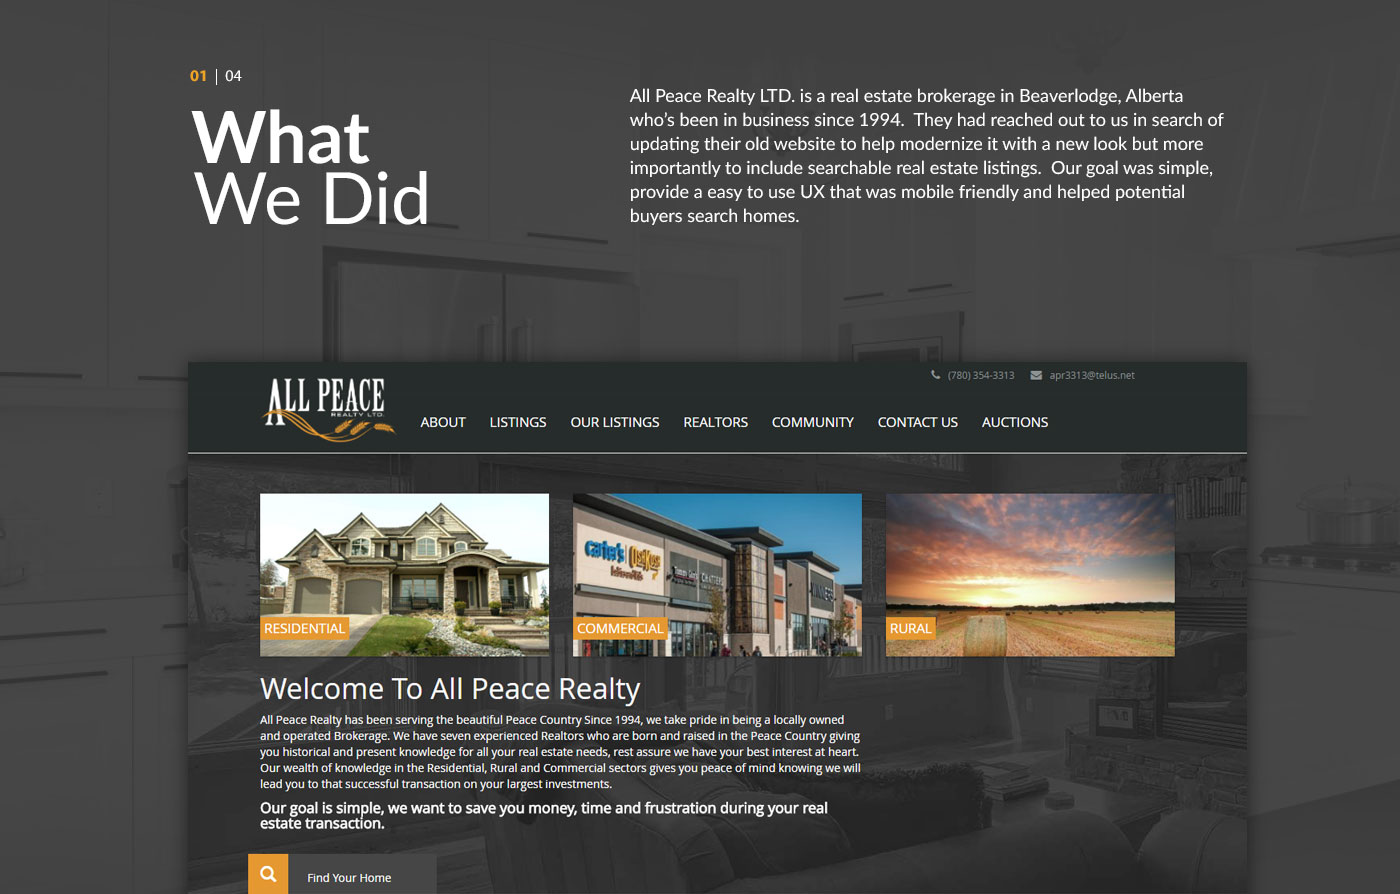 Website Design Case Study Part 2